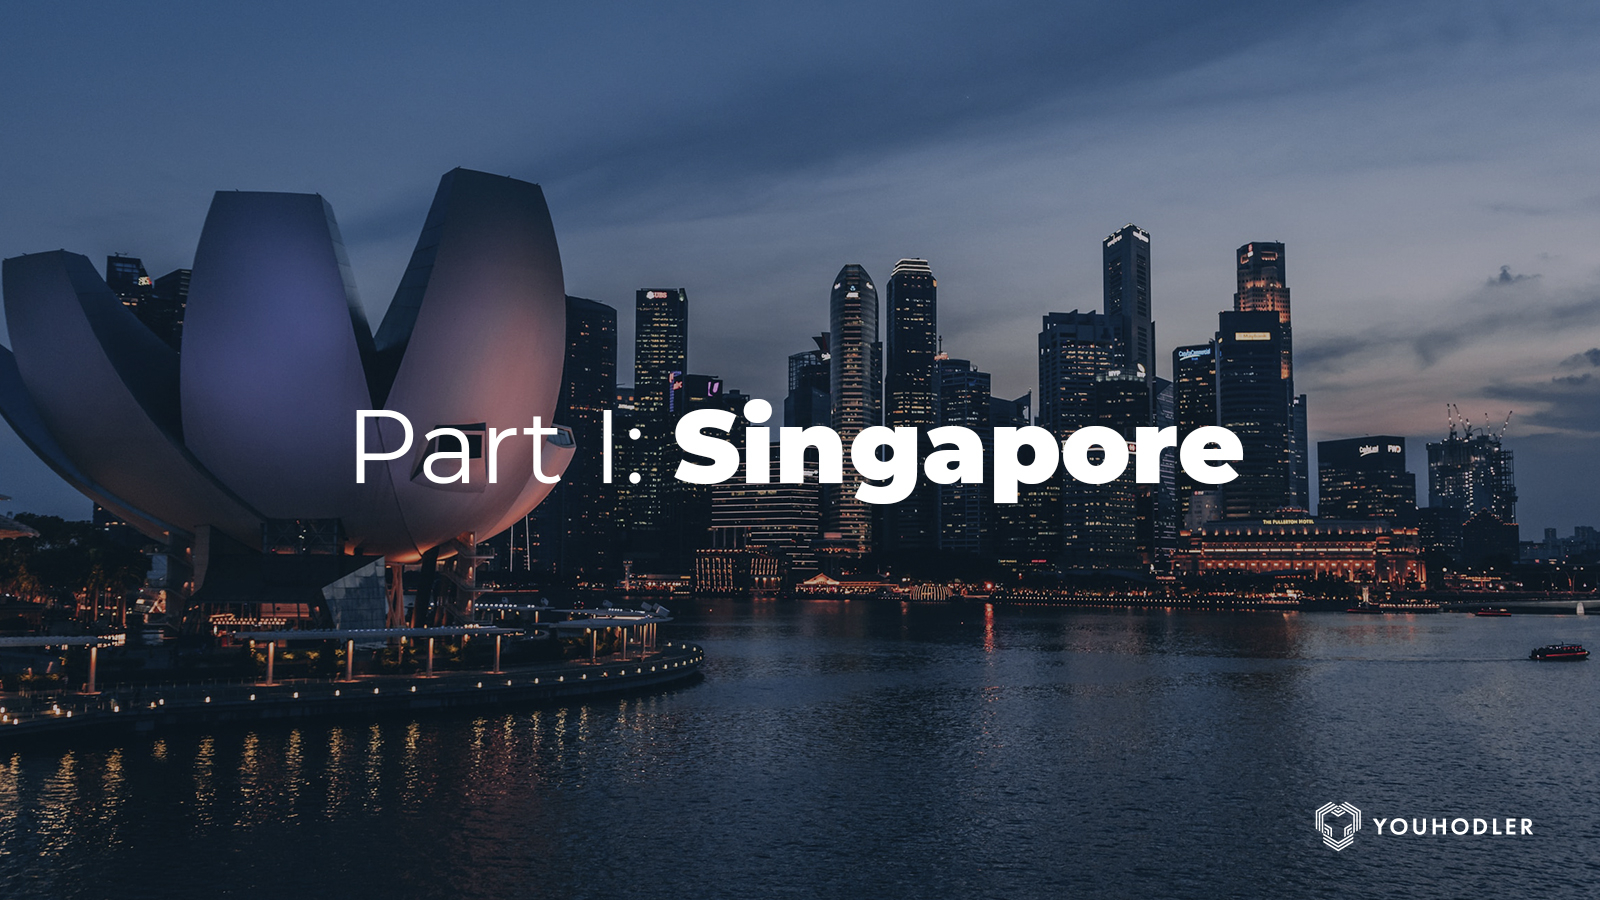 Photo of the Singapore skyline during the night